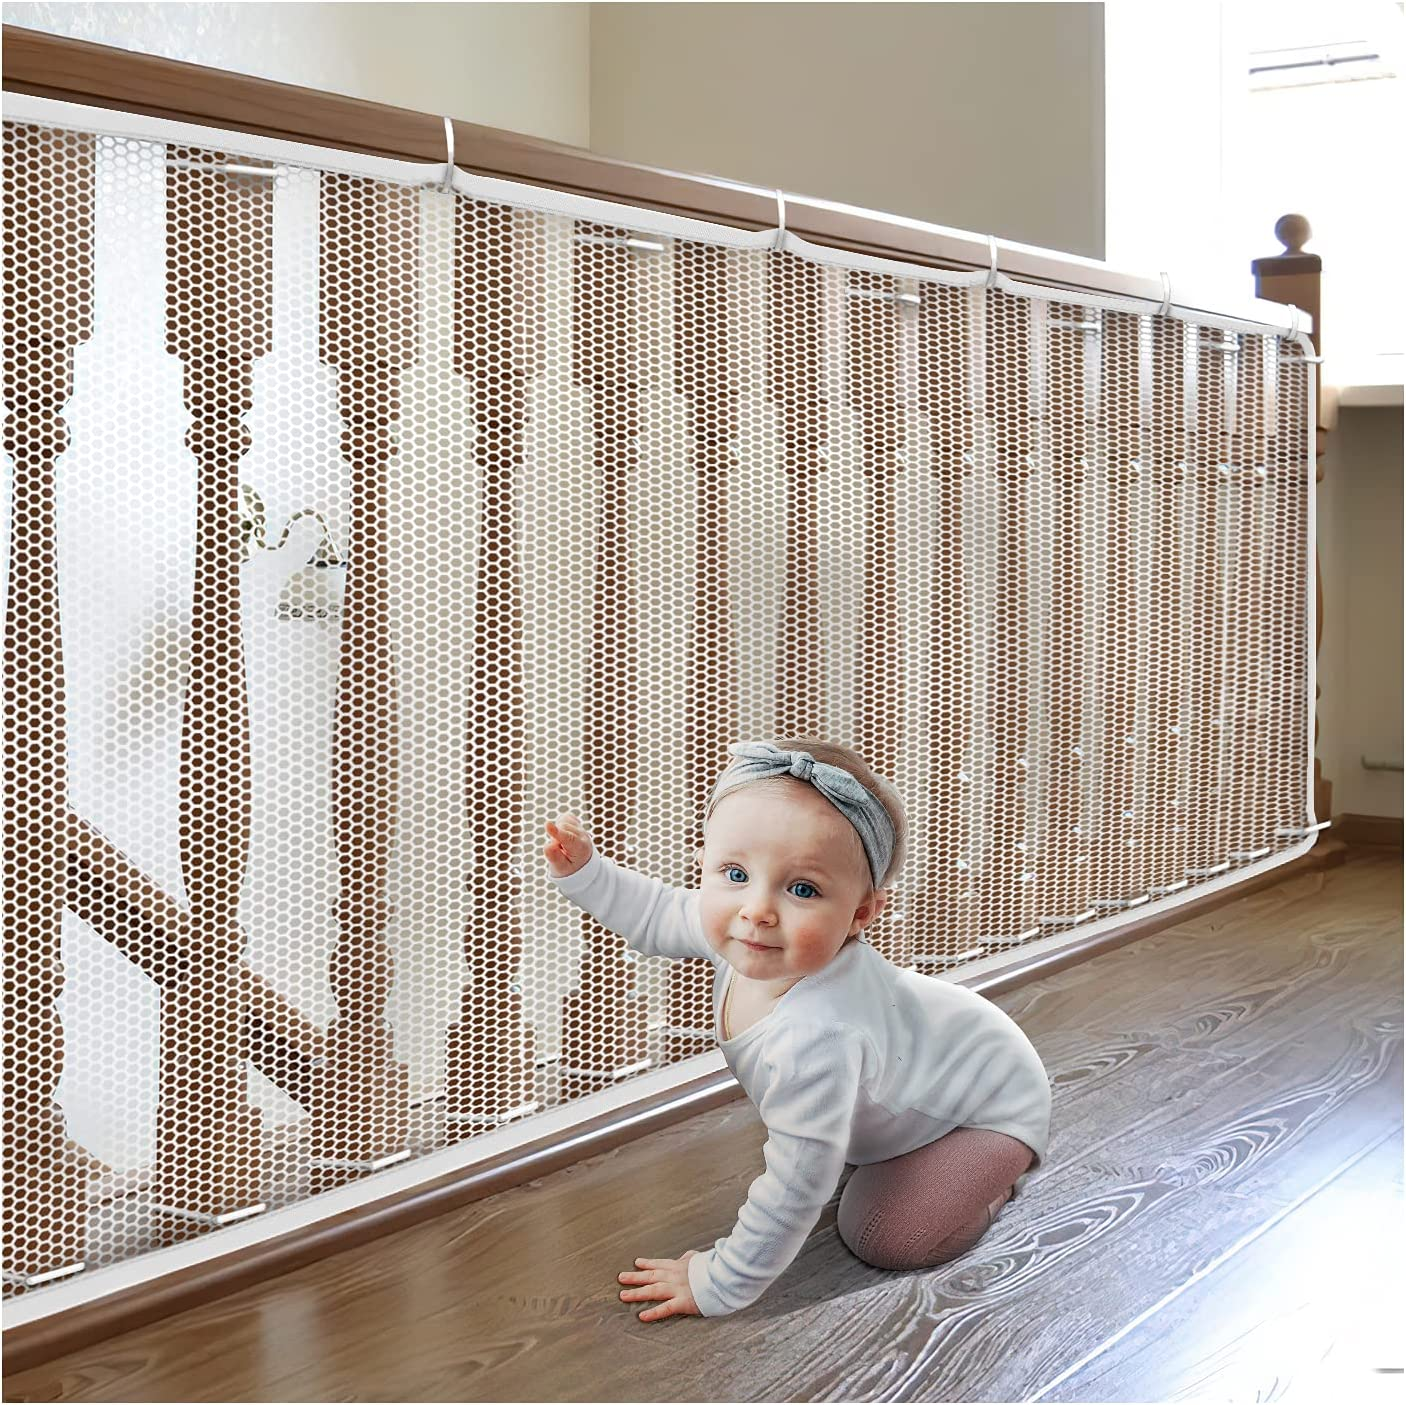 TUOERQI-Banister-Guard-15ft L×3ft H-Balcony-Safety-Net - Improve Safety of Children. The Stairway Net is Durable. Mesh Rail Guard is a Necessity for Children's Safety. Safety Netting for Railings